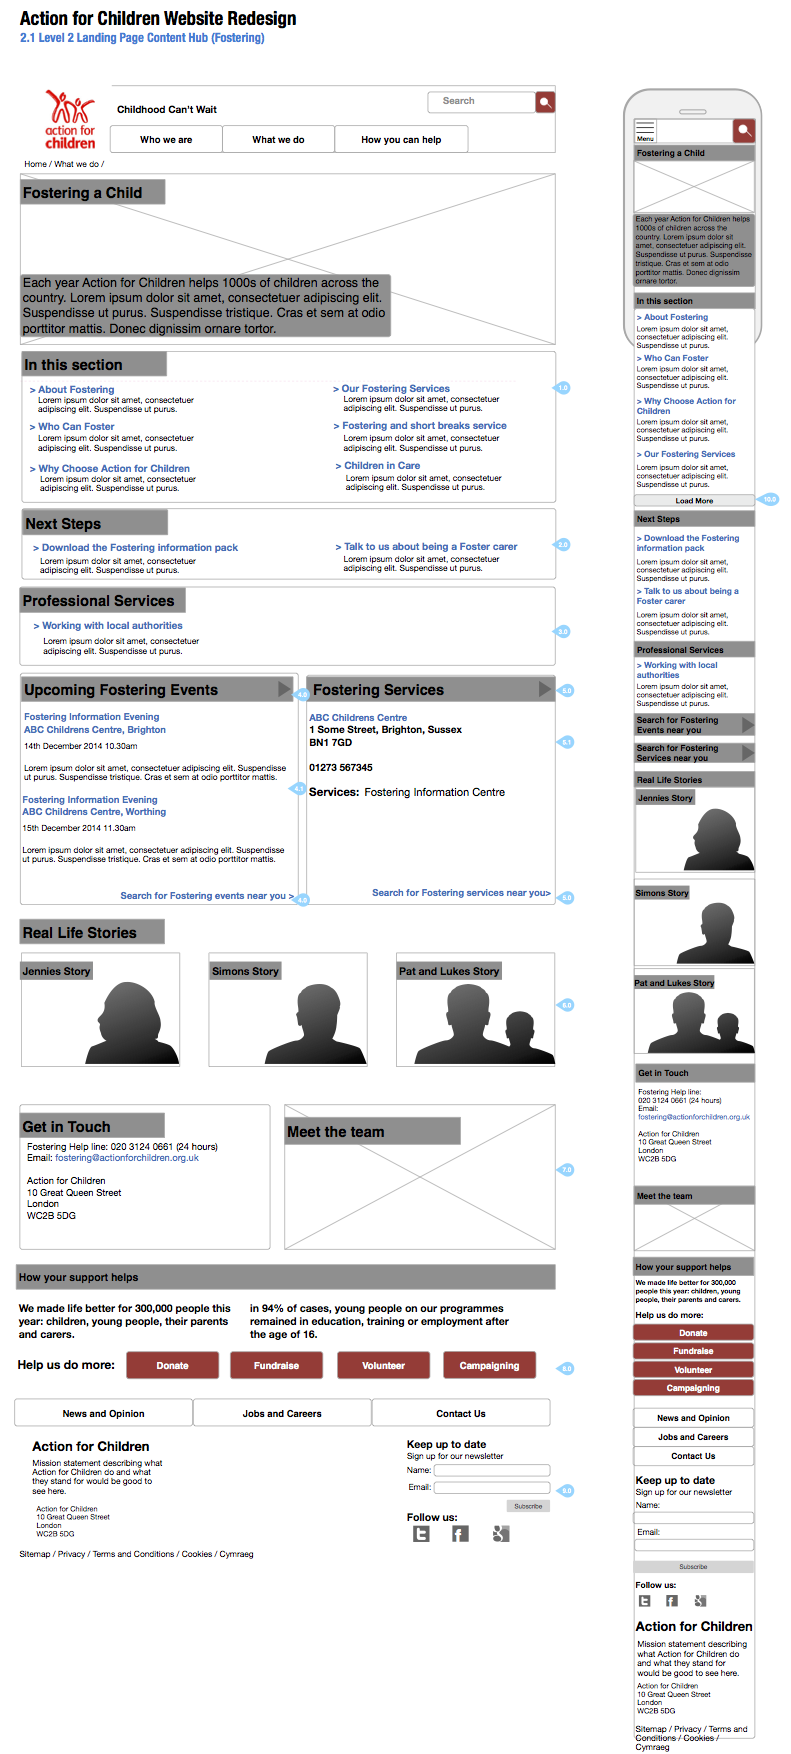 Example content page with modules in situ